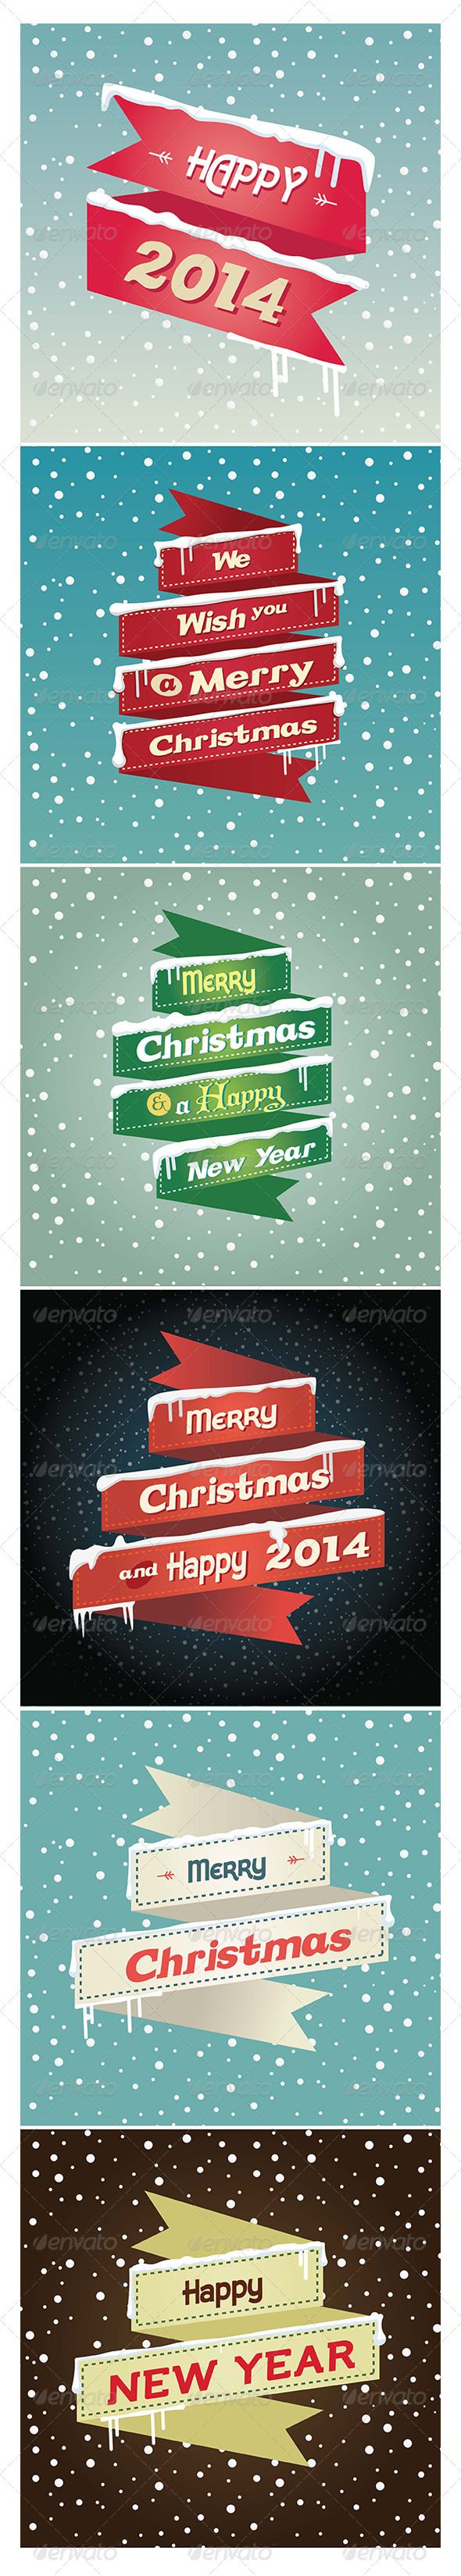 Flat Robbons Christmas and Happy New Year 2014